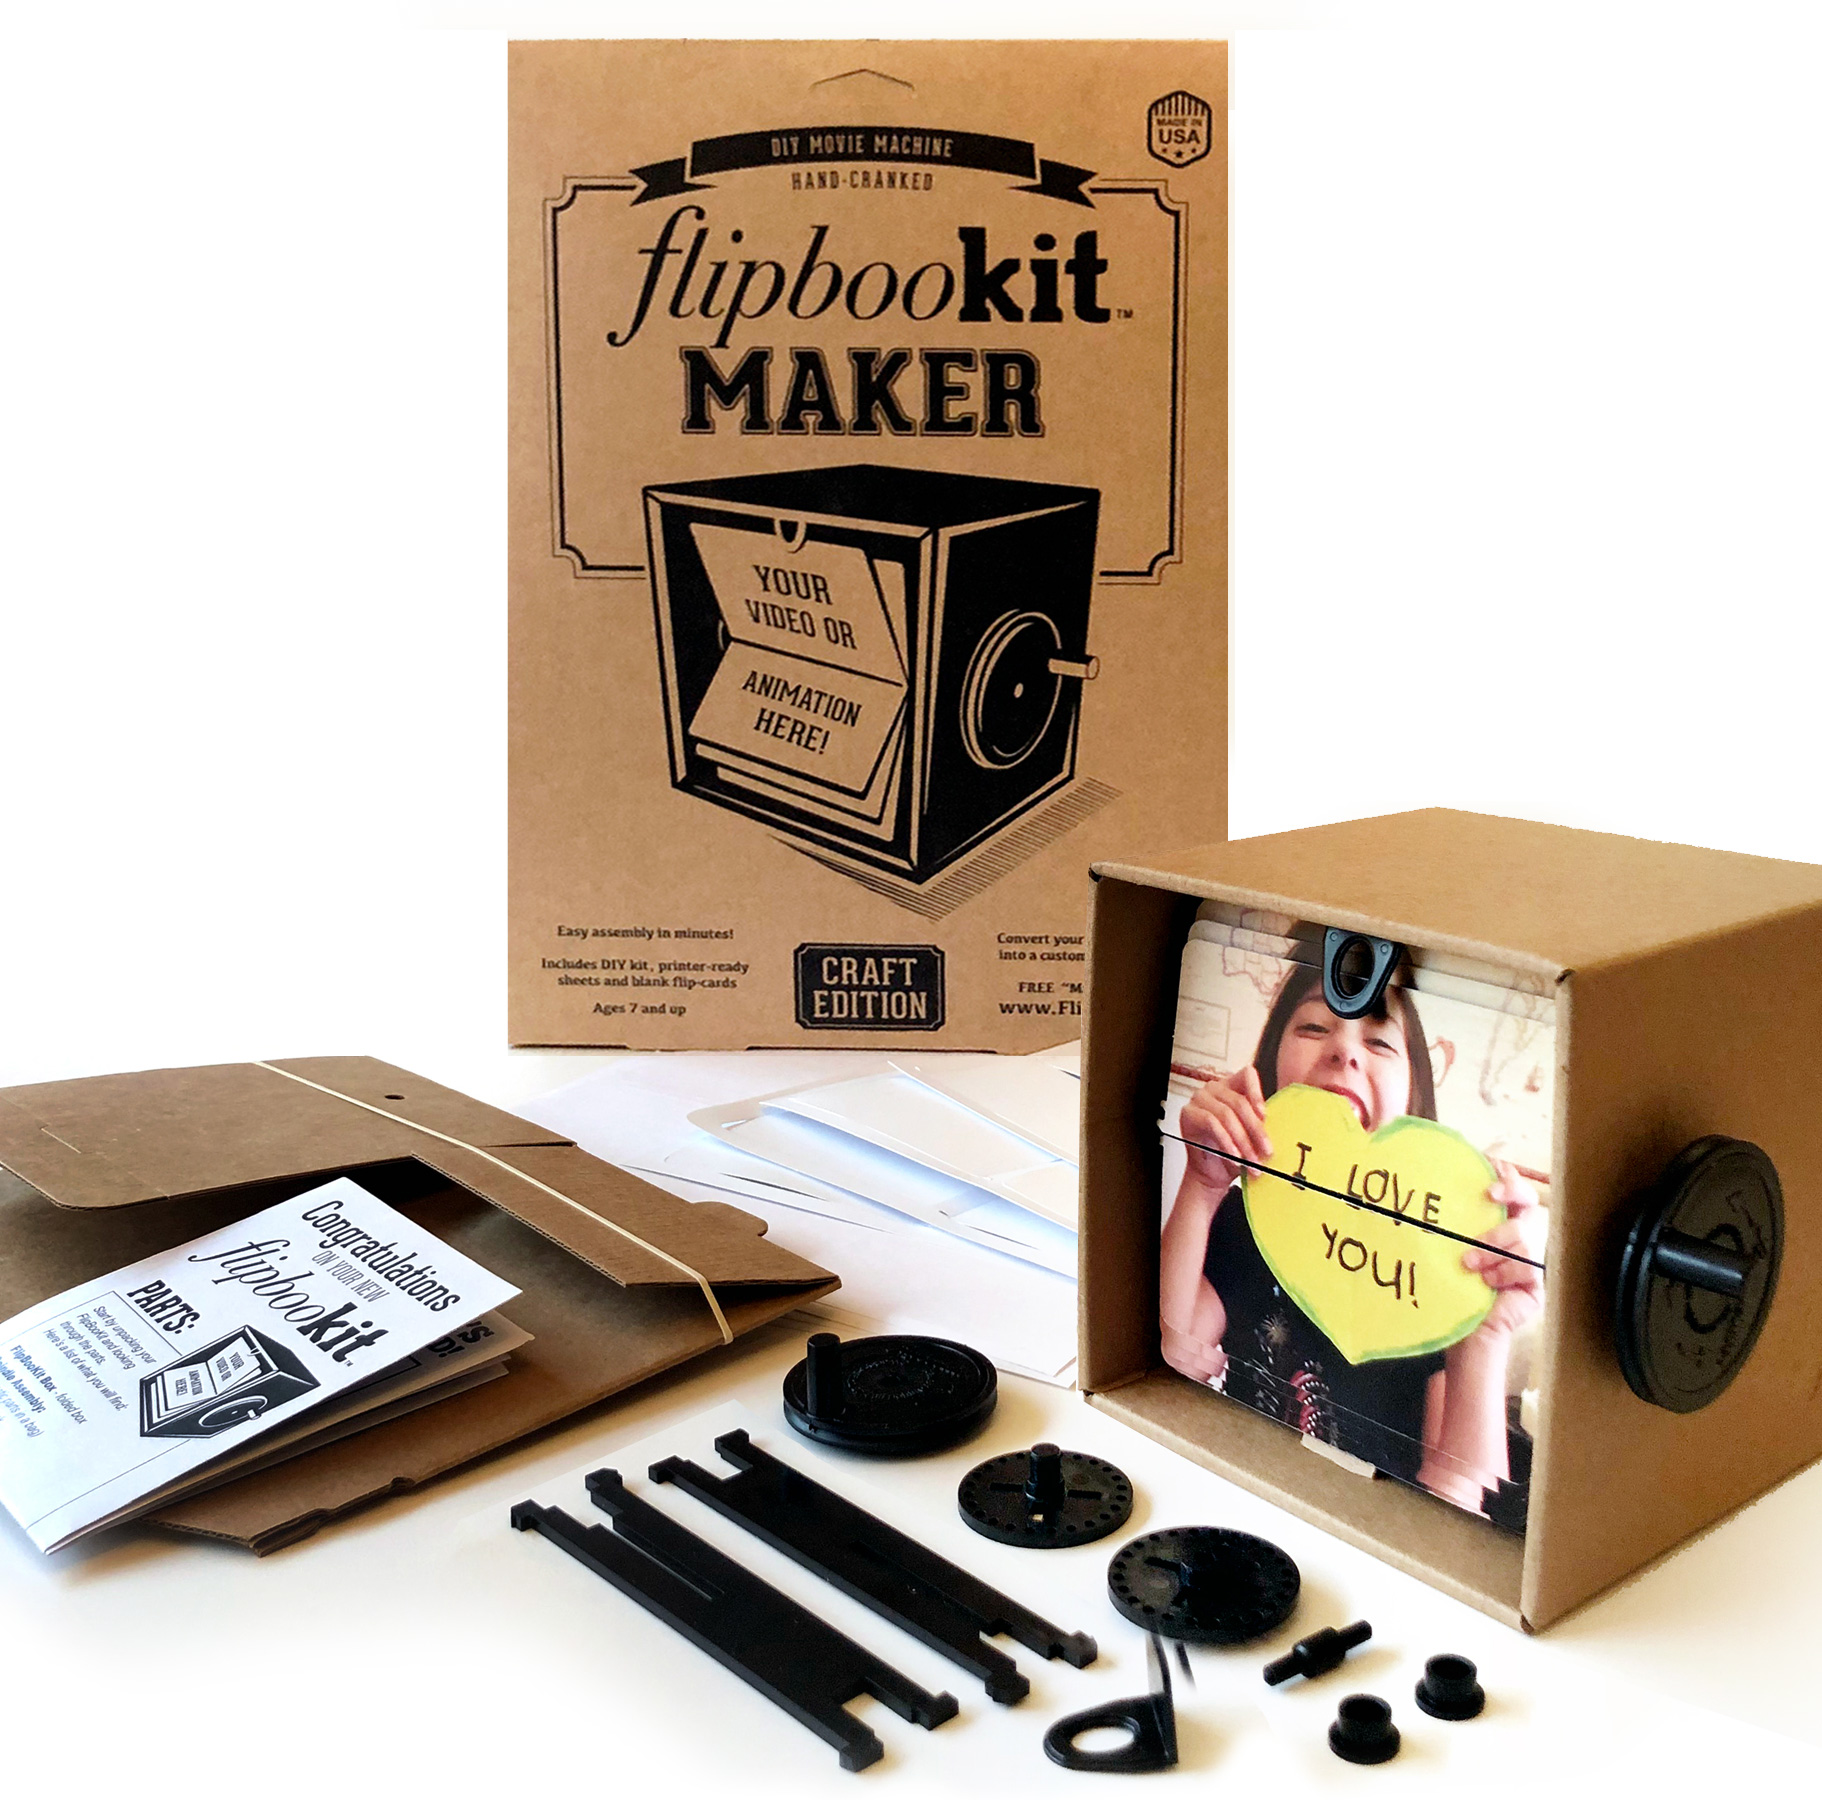 Flipbookit Maker Kit Craft – make your own flip book animation machine!